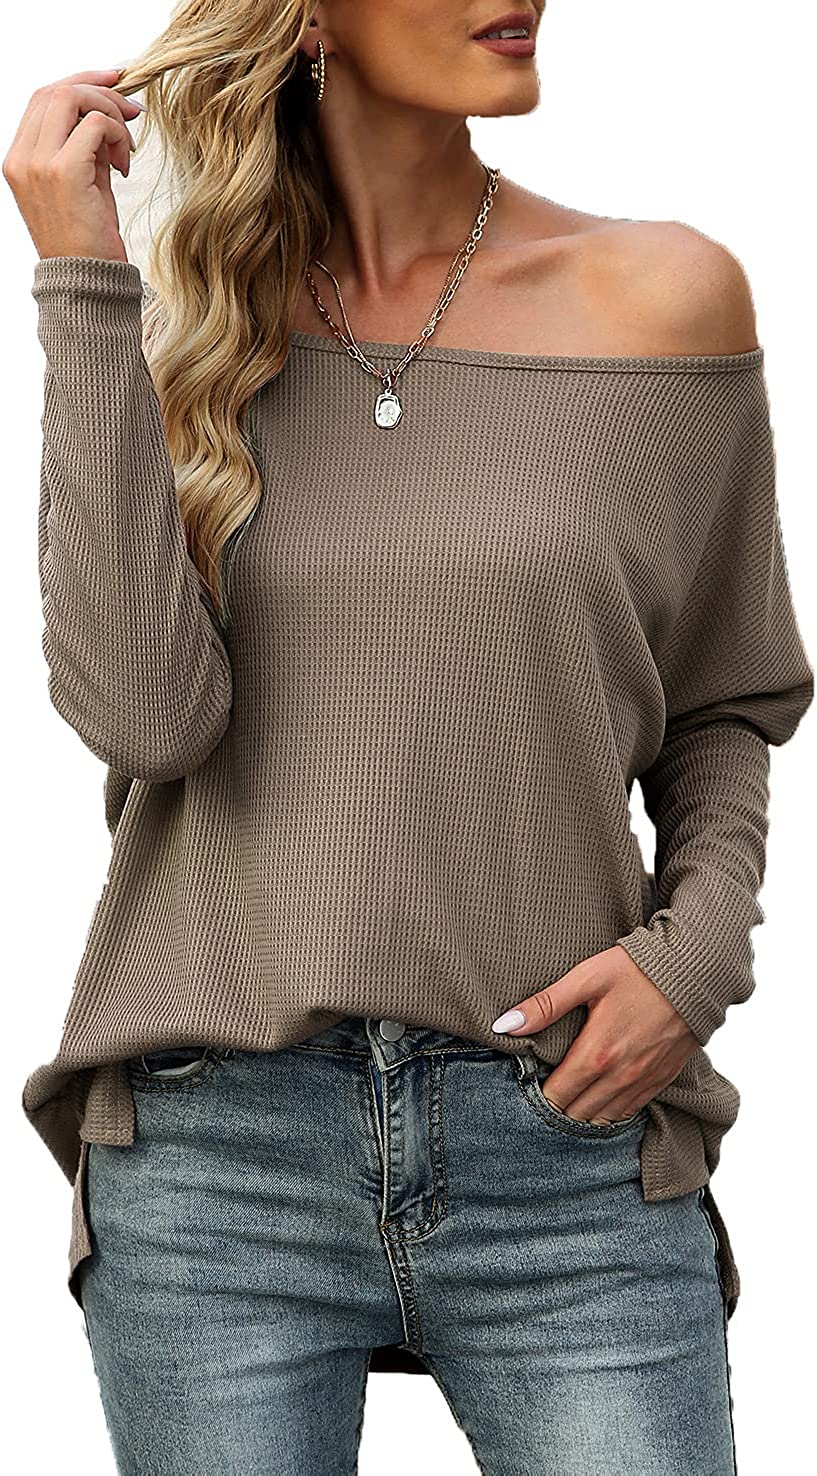 Quenteen Women's Sales of SALE items from new works Off Shoulder Genuine Free Shipping Pullover Sleeve Oversize Long Tops